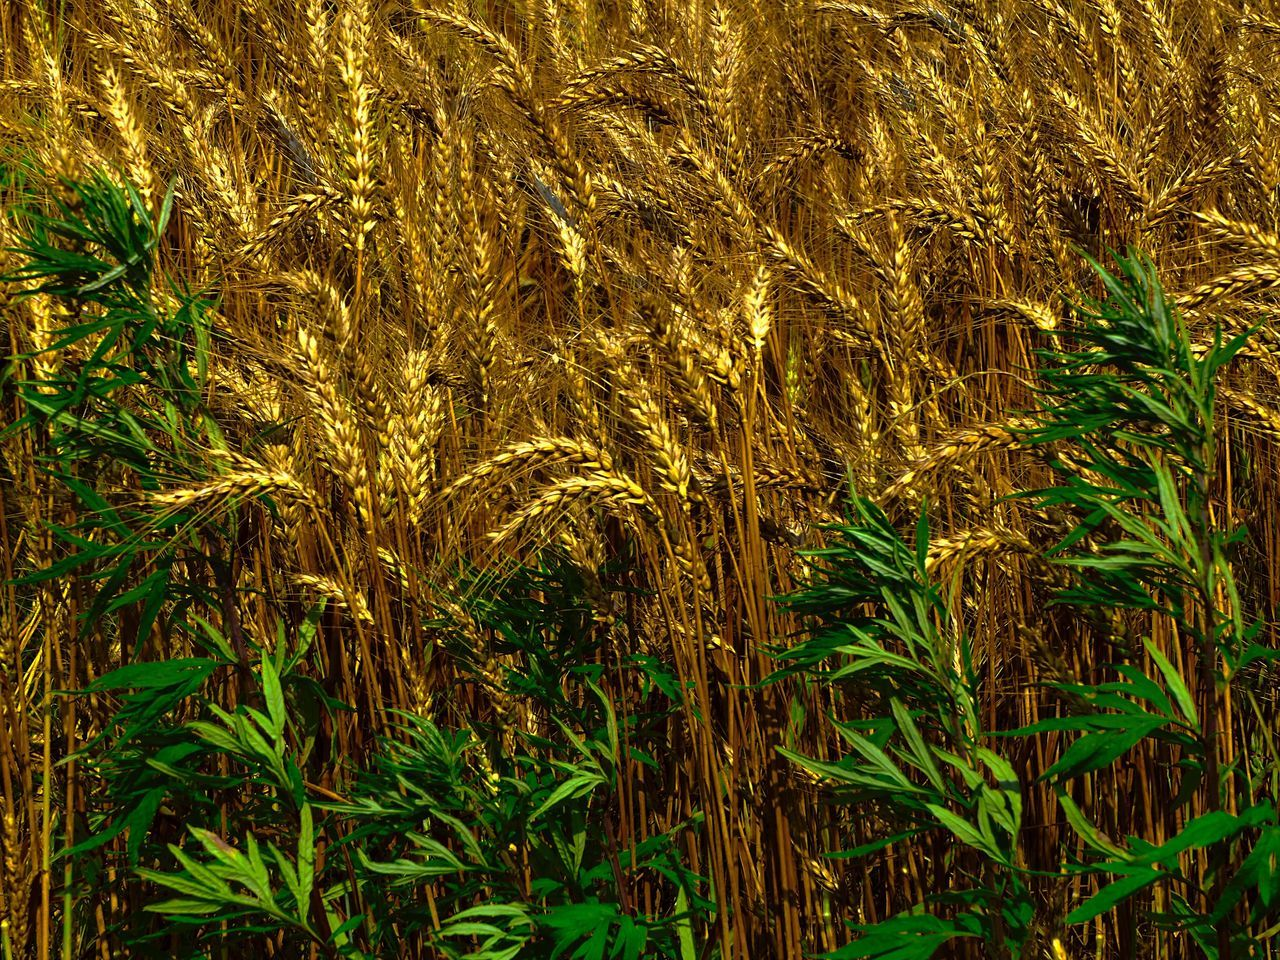 growth, agriculture, field, nature, cereal plant, green color, farm, grass, crop, plant, no people, full frame, wheat, day, outdoors, backgrounds, beauty in nature, tranquility, rural scene, ear of wheat, close-up, freshness